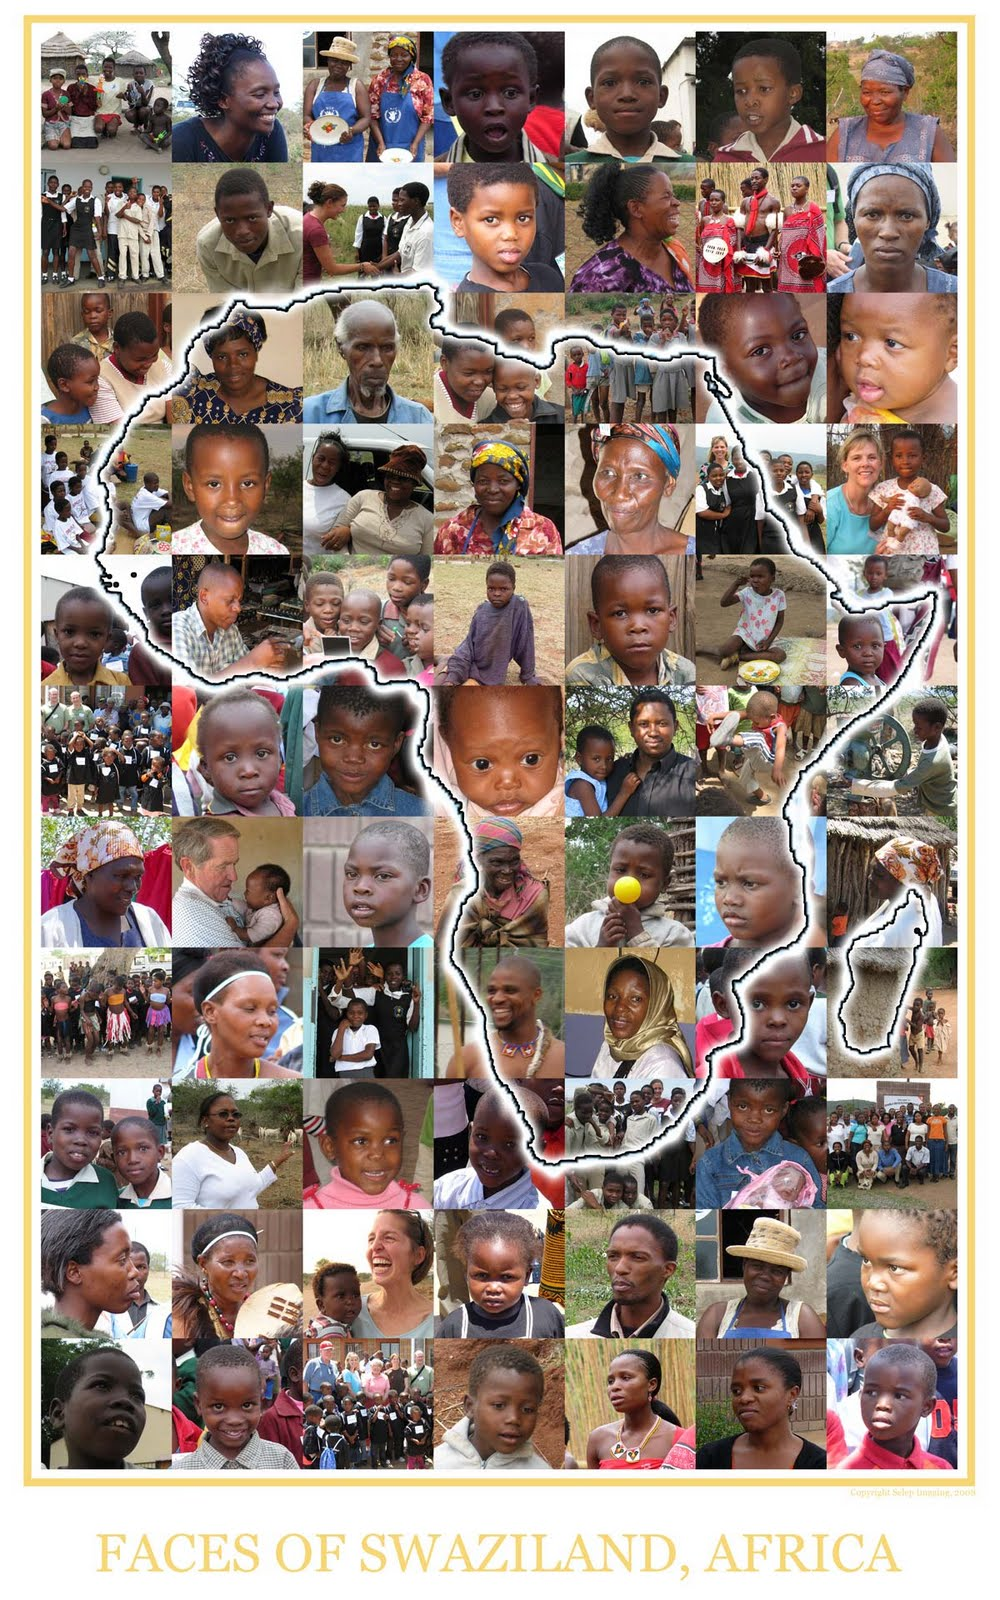 Faces of Swaziland Africa collage by Selep Imaging